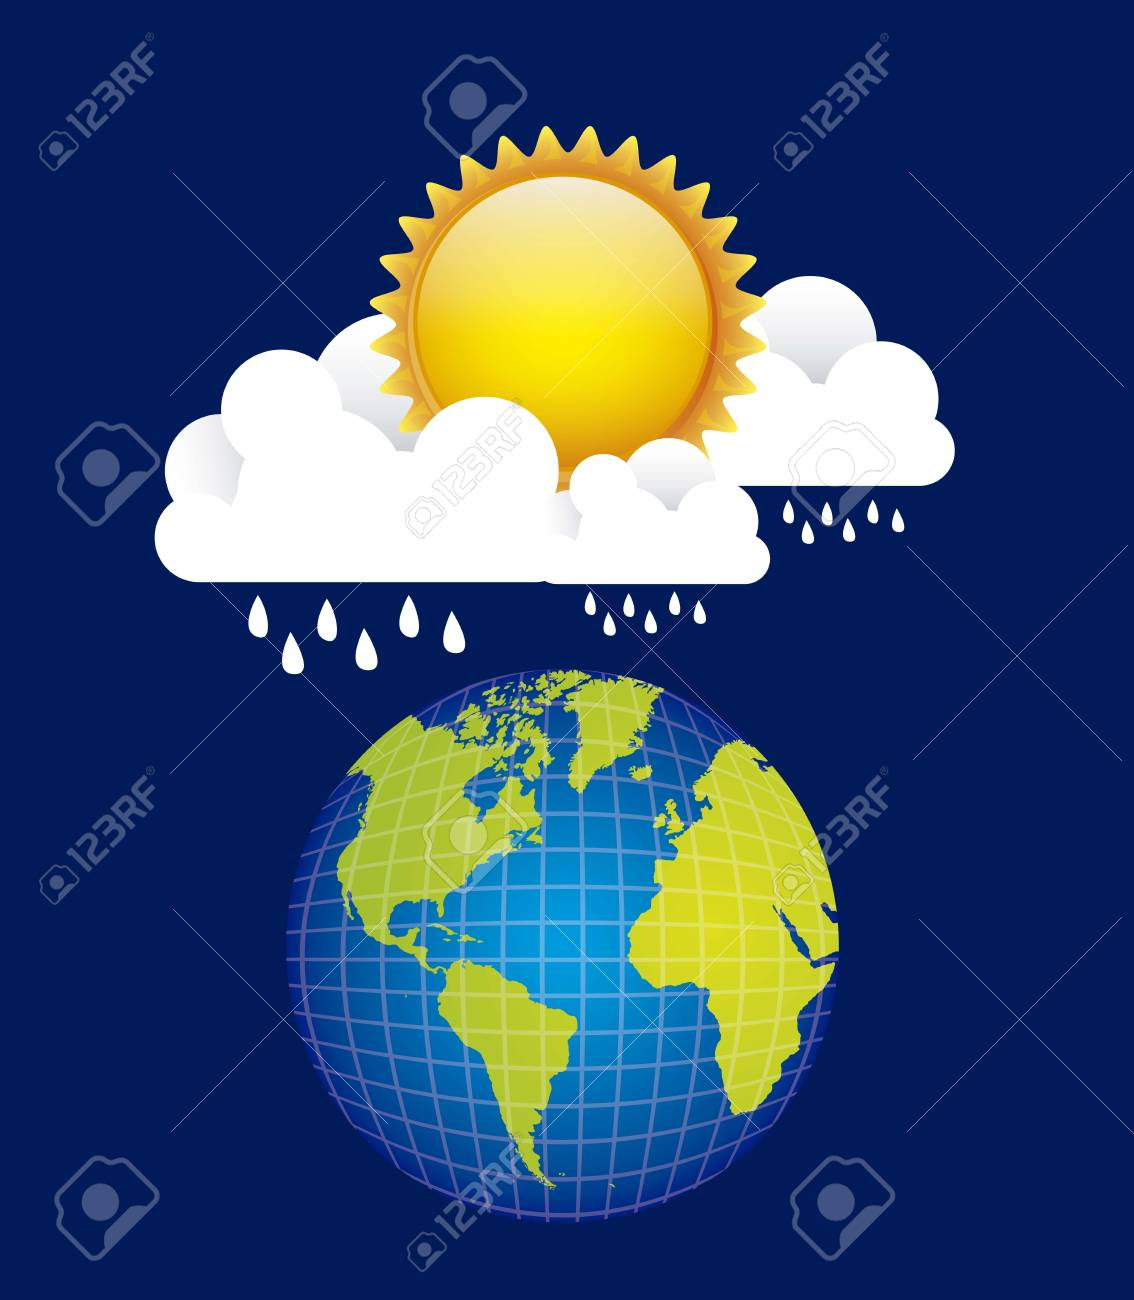 Illustration of icons sun icons of weather and seasons, vector illustration Stock Vector - 16819380